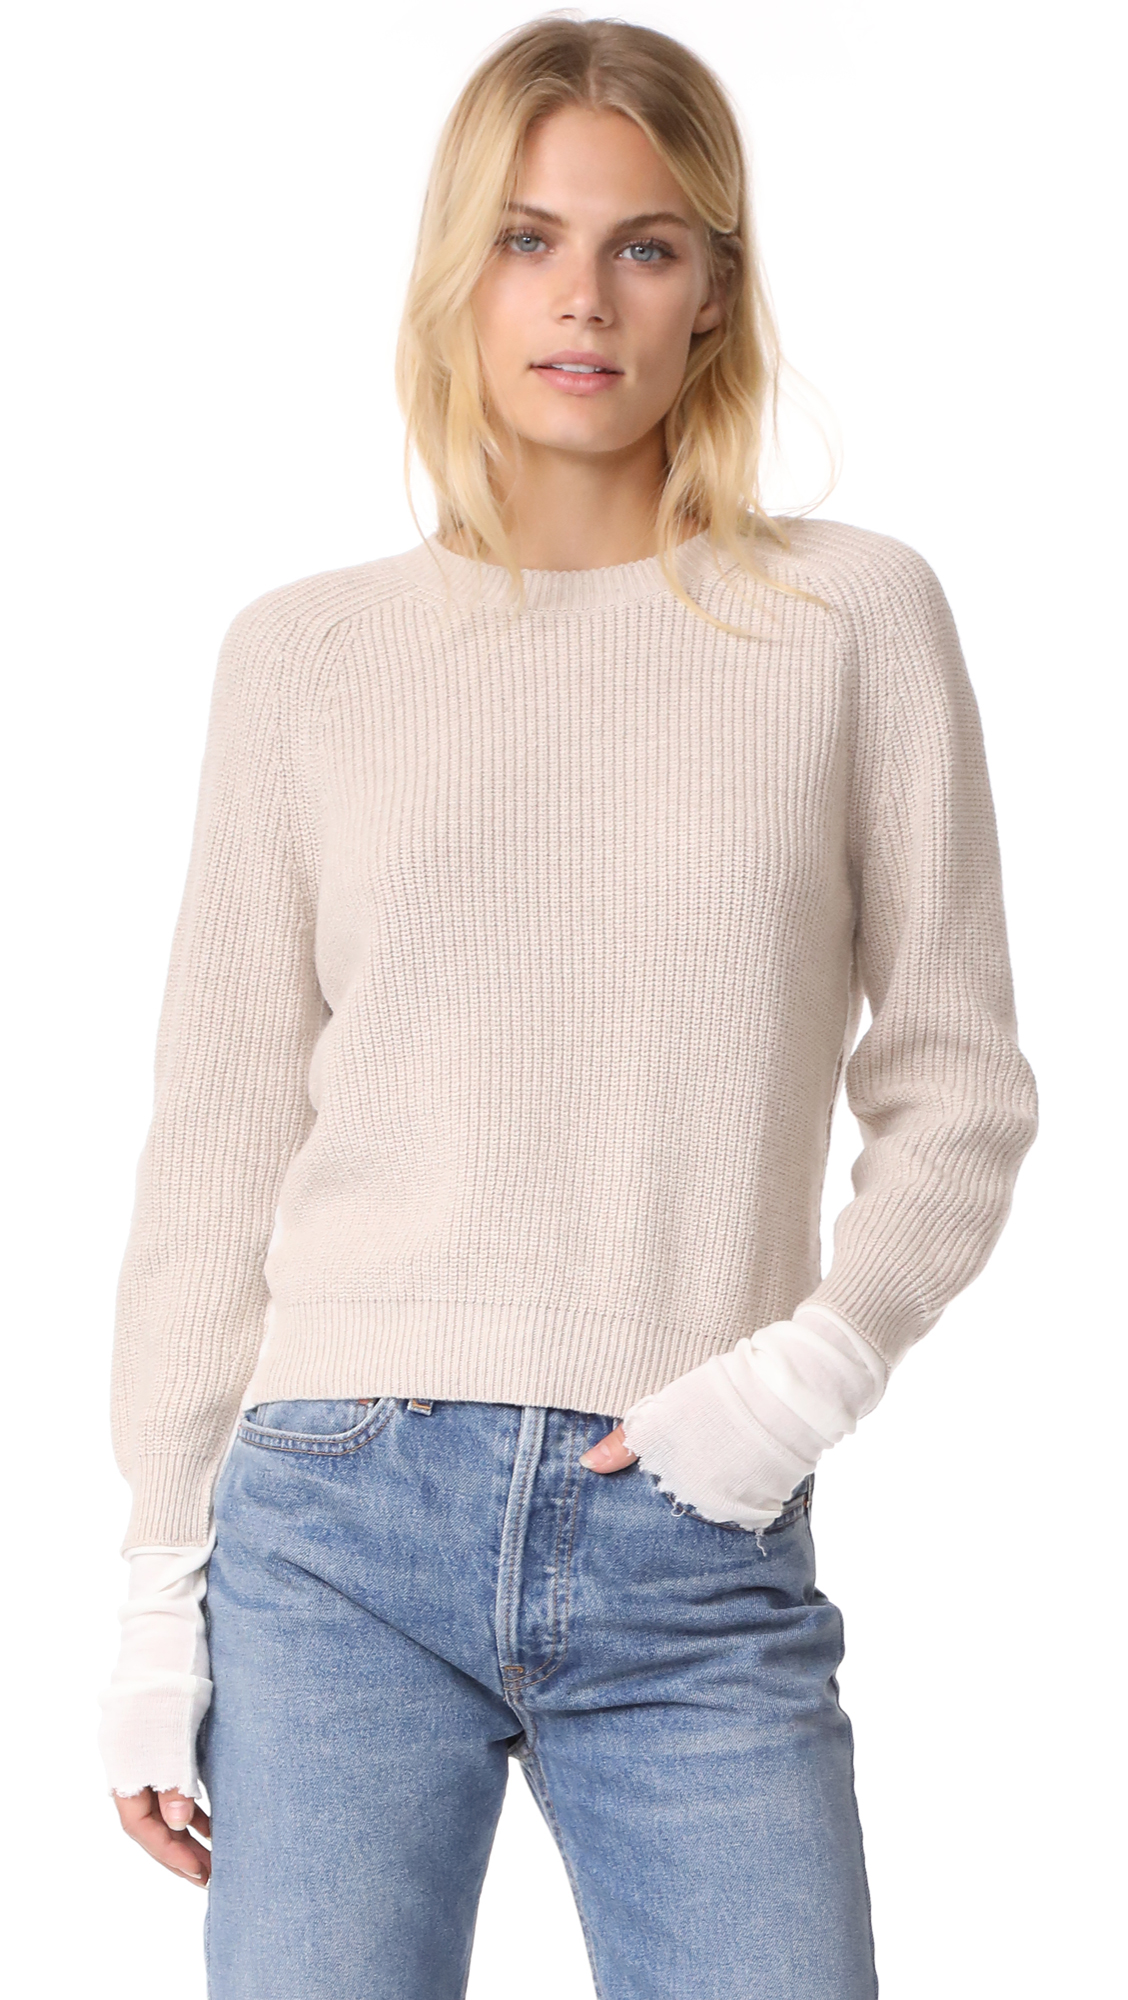 Helmut Lang Layered Sweater - Linen